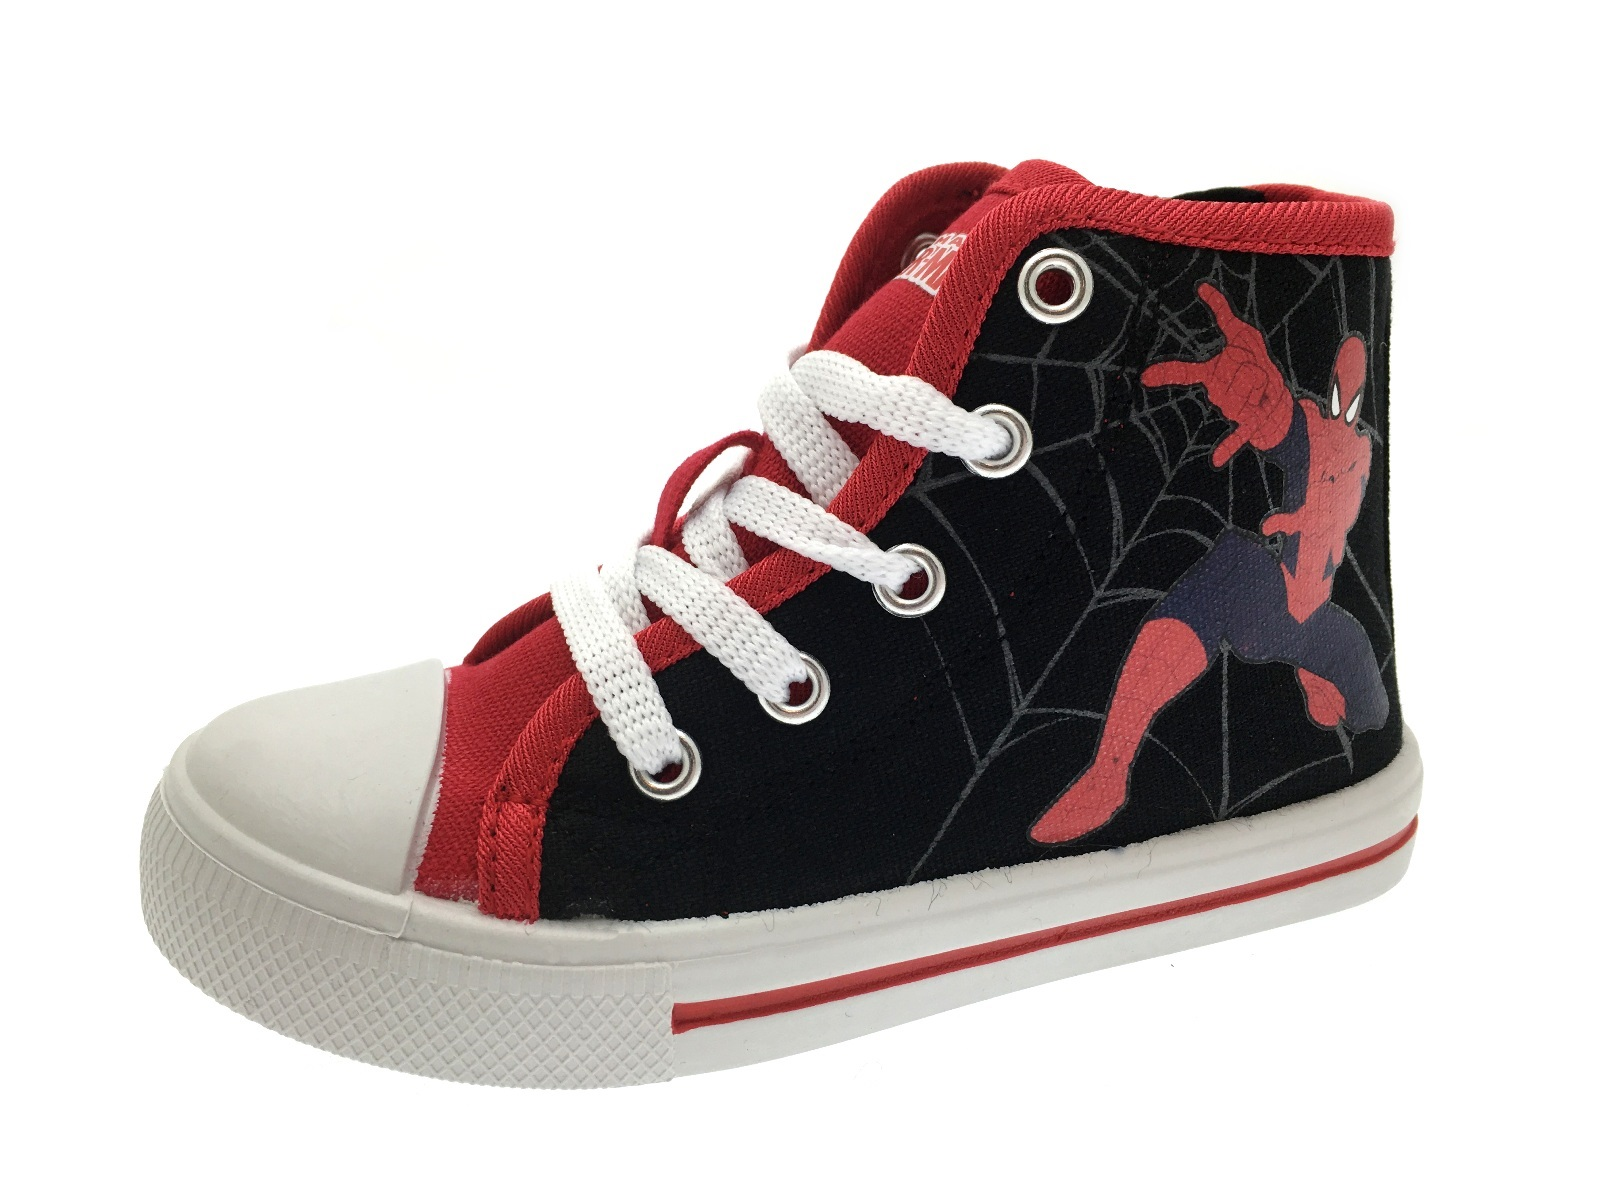 Marvel Spiderman Hi Tops Canvas Pumps Trainers Ankle Boots Boys Shoes Kids Size